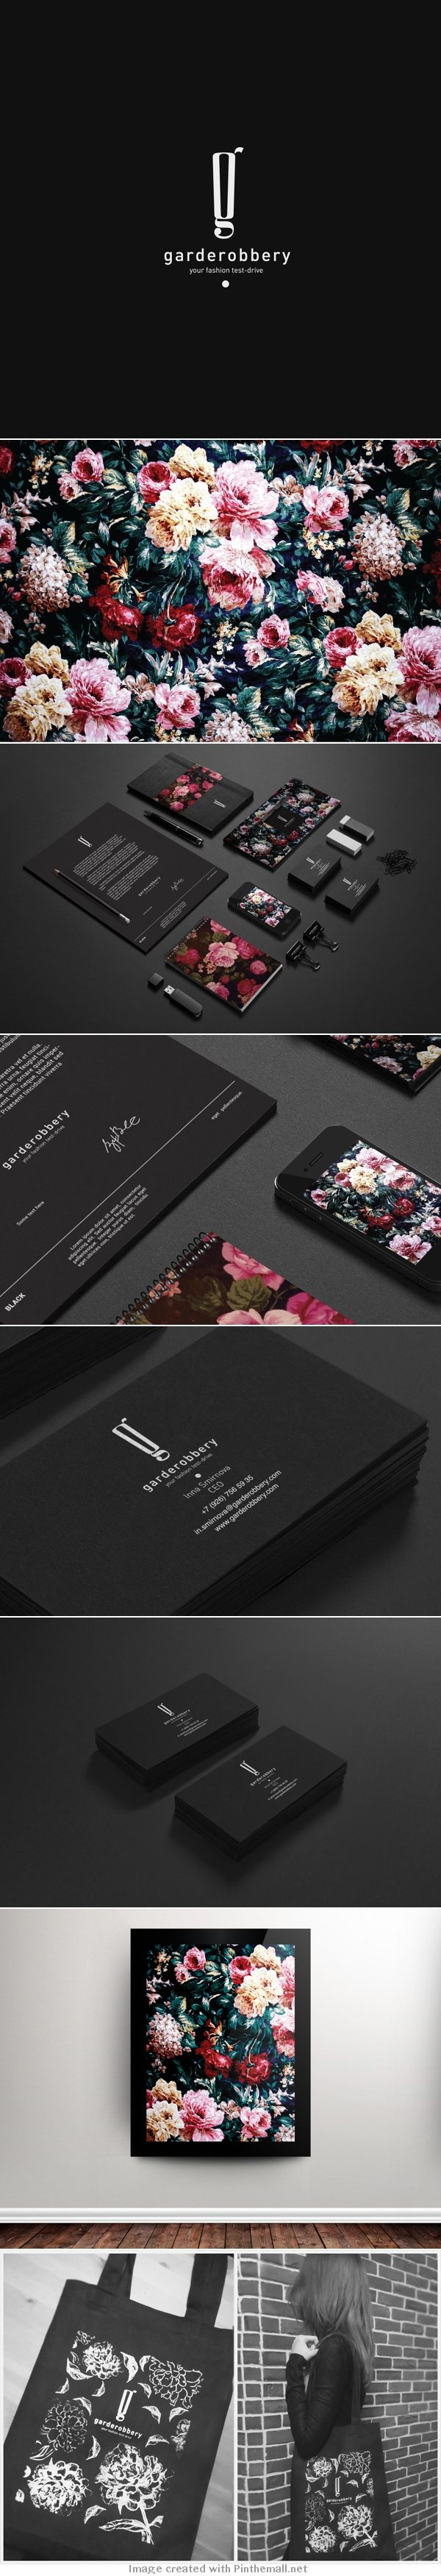 The very beautiful Garderobbery #identity #packaging #branding curated by Packaging Diva PD - created via https://www.behance.net/gallery/Garderobbery/7383521